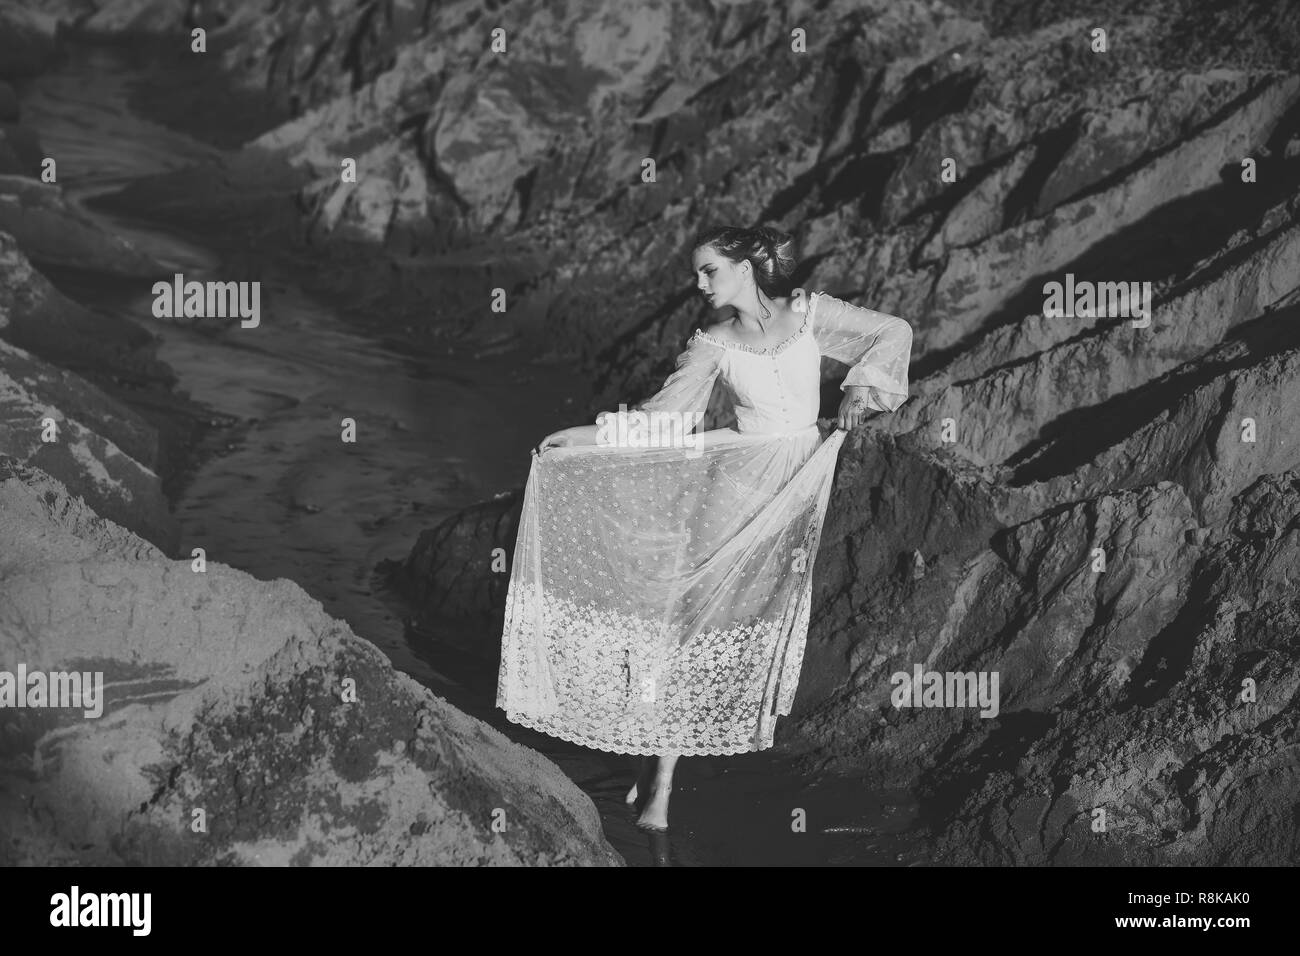 Woman in white dress pose in water, fashion - Stock Image